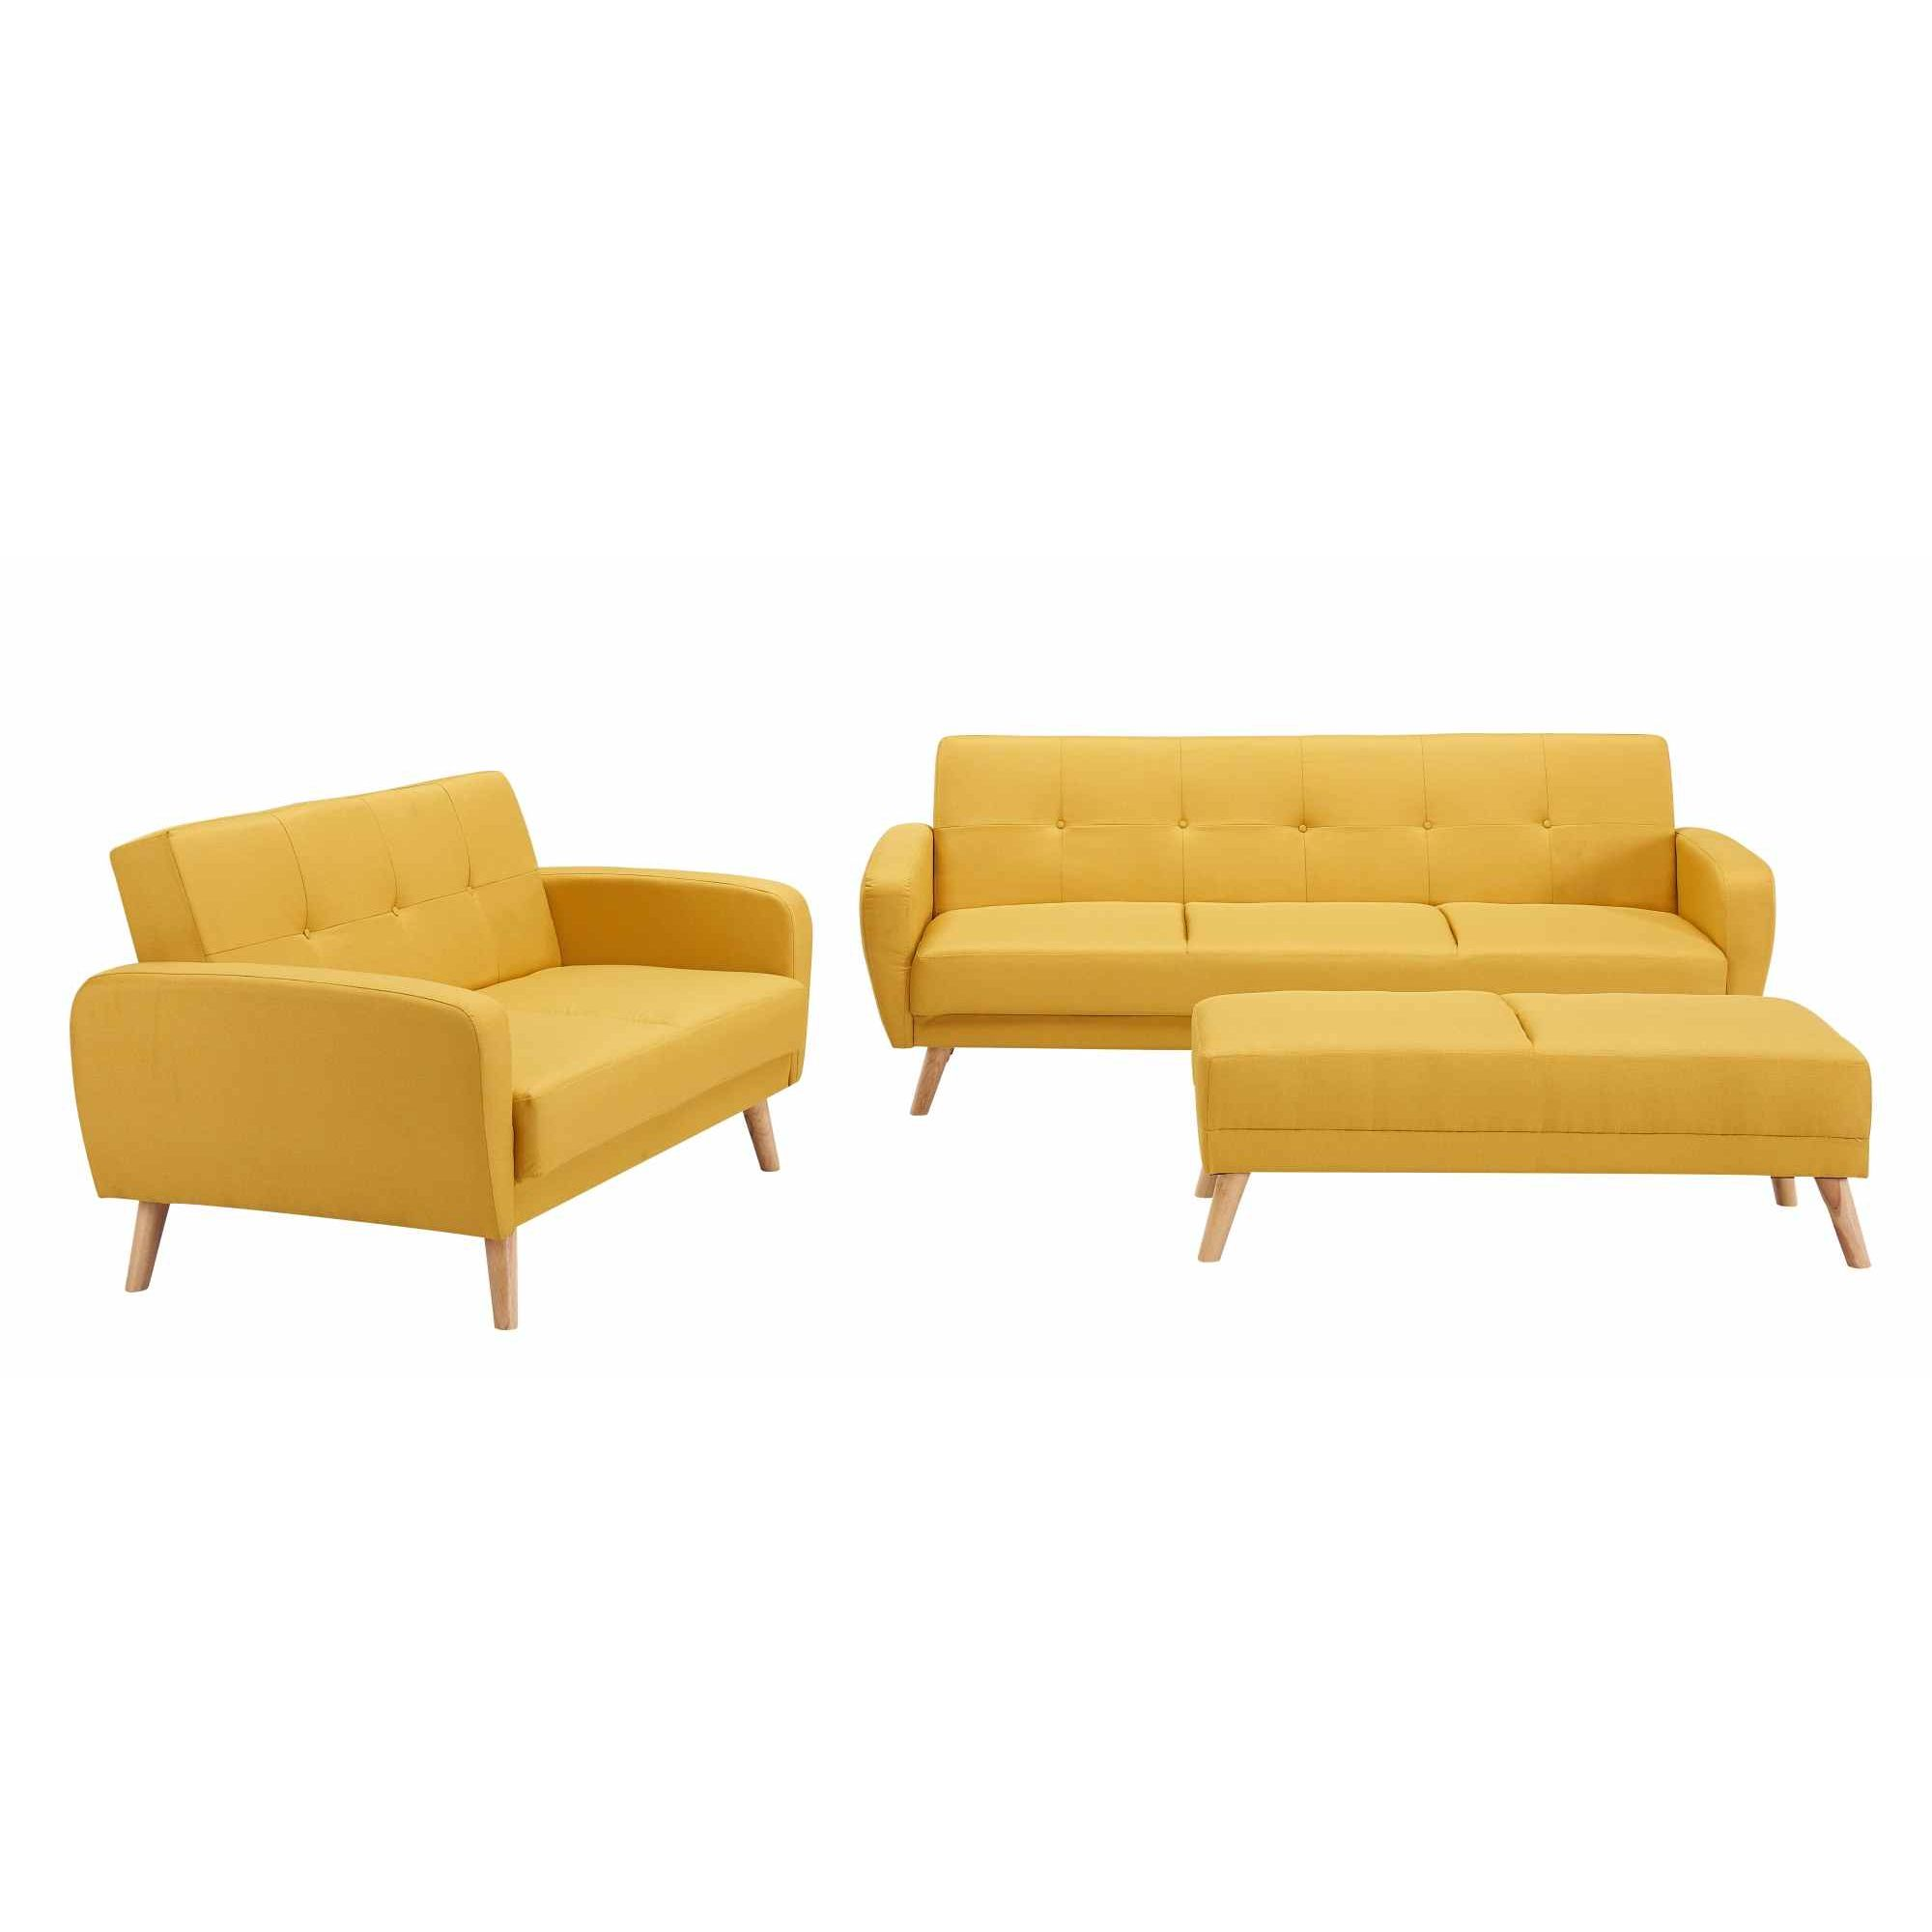 Deco canape jaune idees novatrices de la conception et for Canapé convertible scandinave pour noël decoration maison